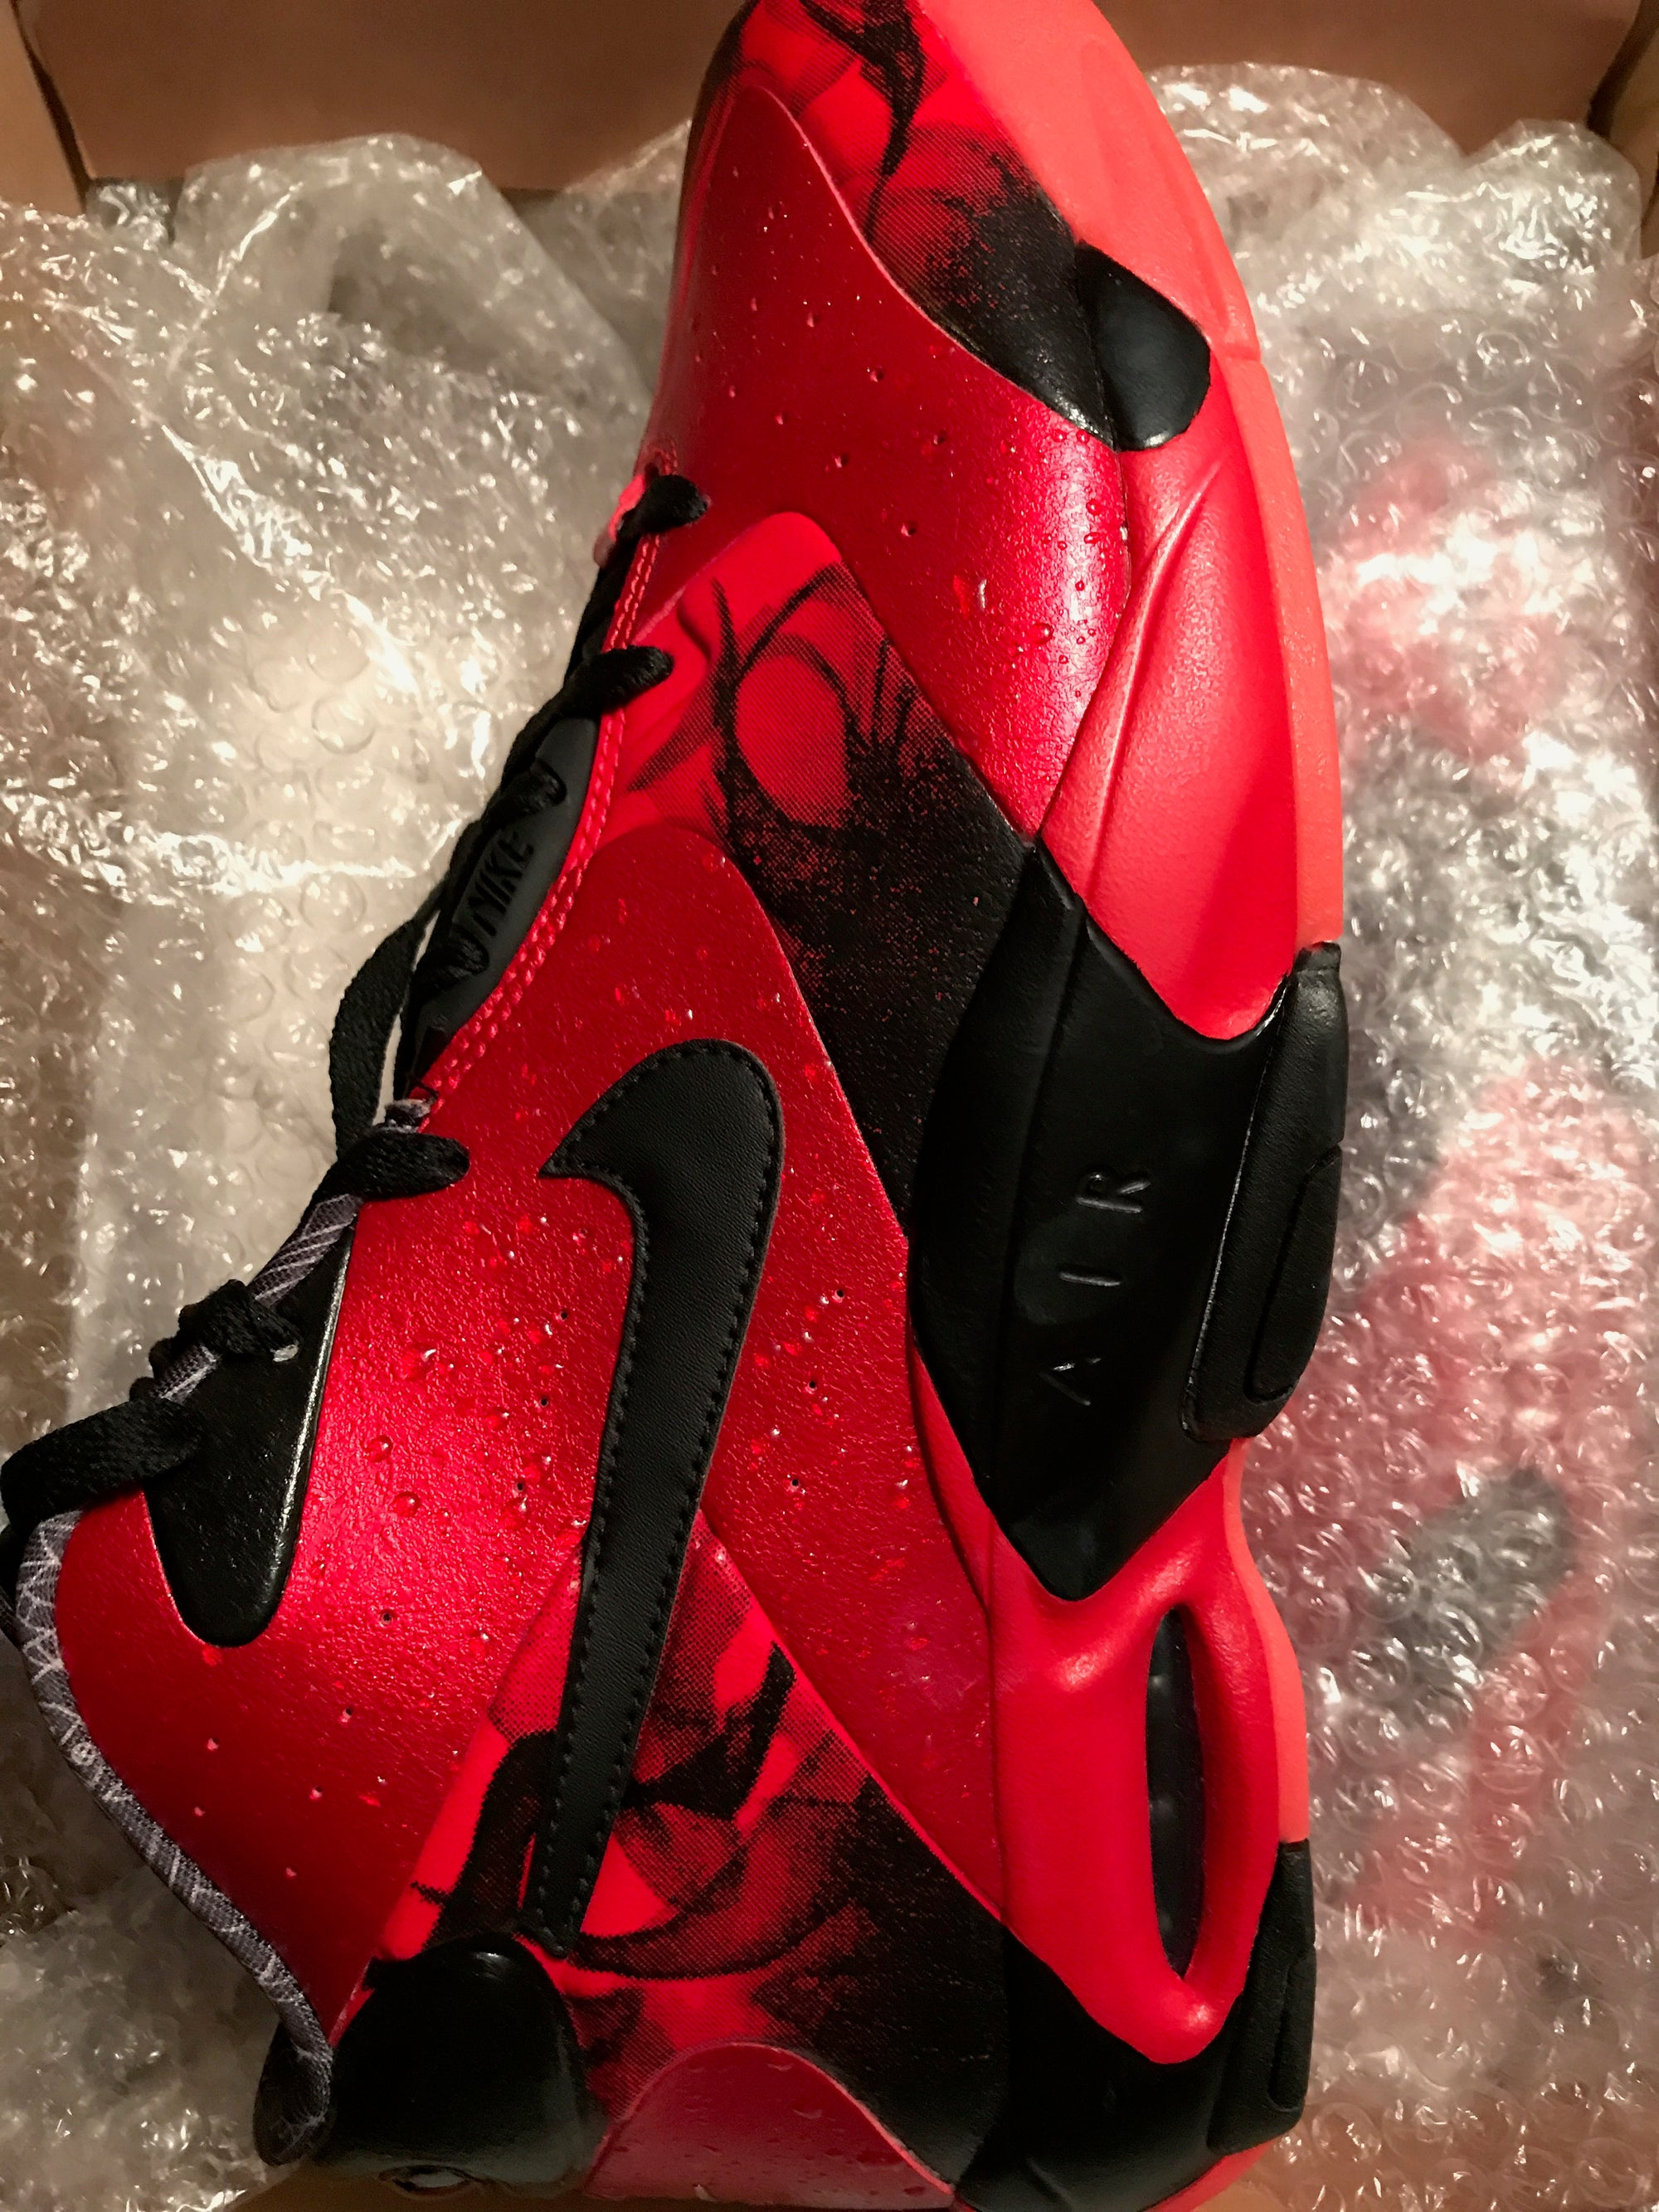 Image of NIKE AIR UP '14 QS 652124 600 MEN'S SZ 13 UNIVERSITY RED Shoes - New